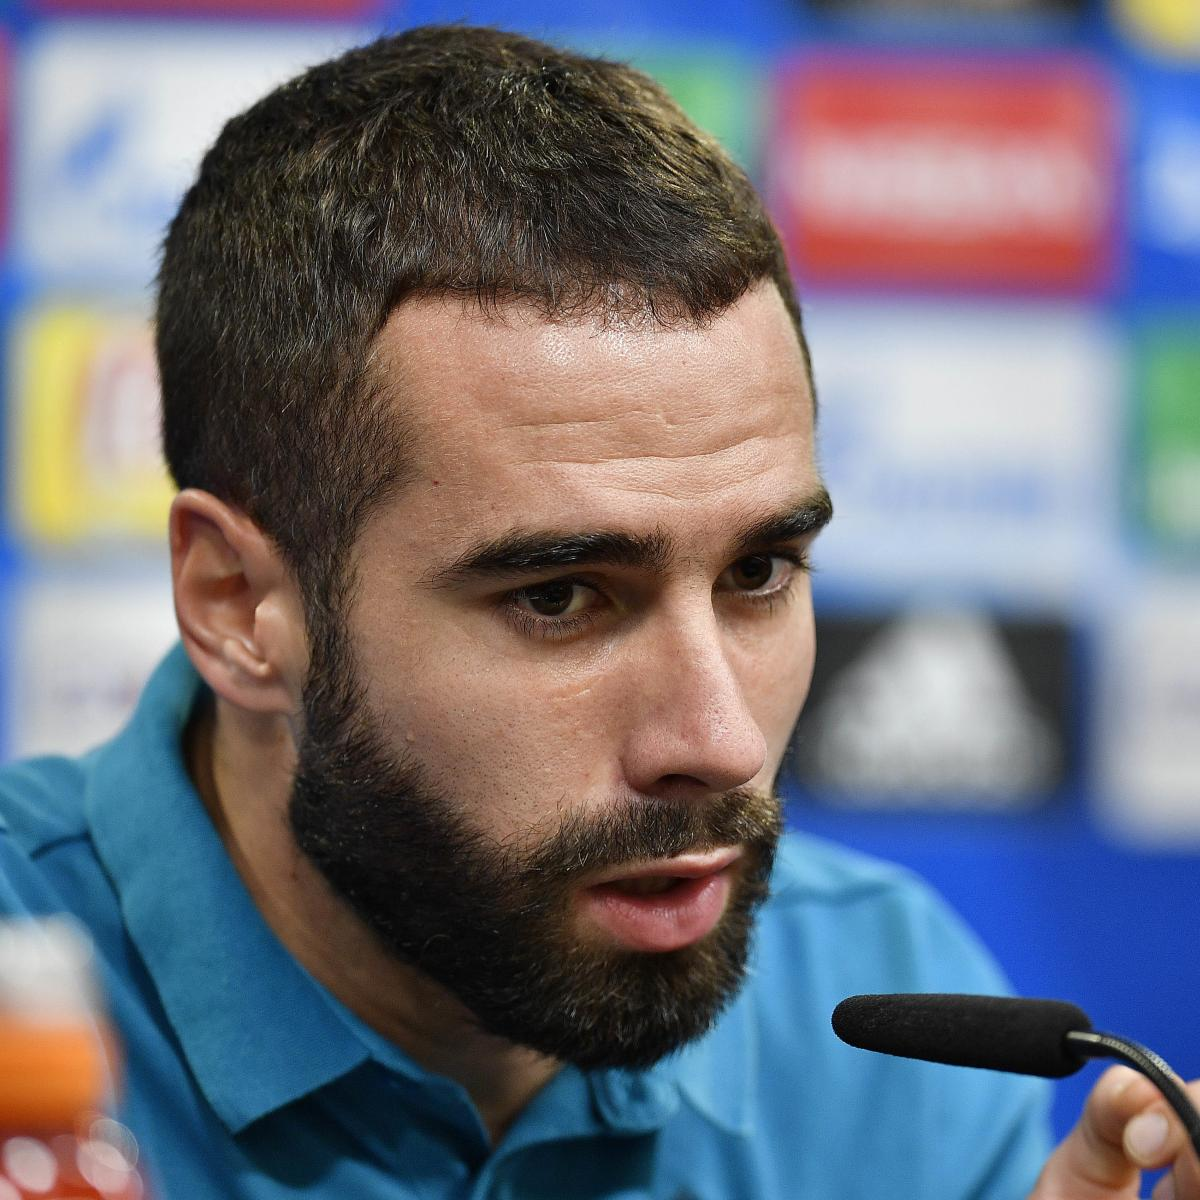 Dani Carvajal Out Indefinitely with Condition | Bleacher ... on juan francisco moreno fuertes, jonathan soriano casas, pablo gil, pablo sarabia,